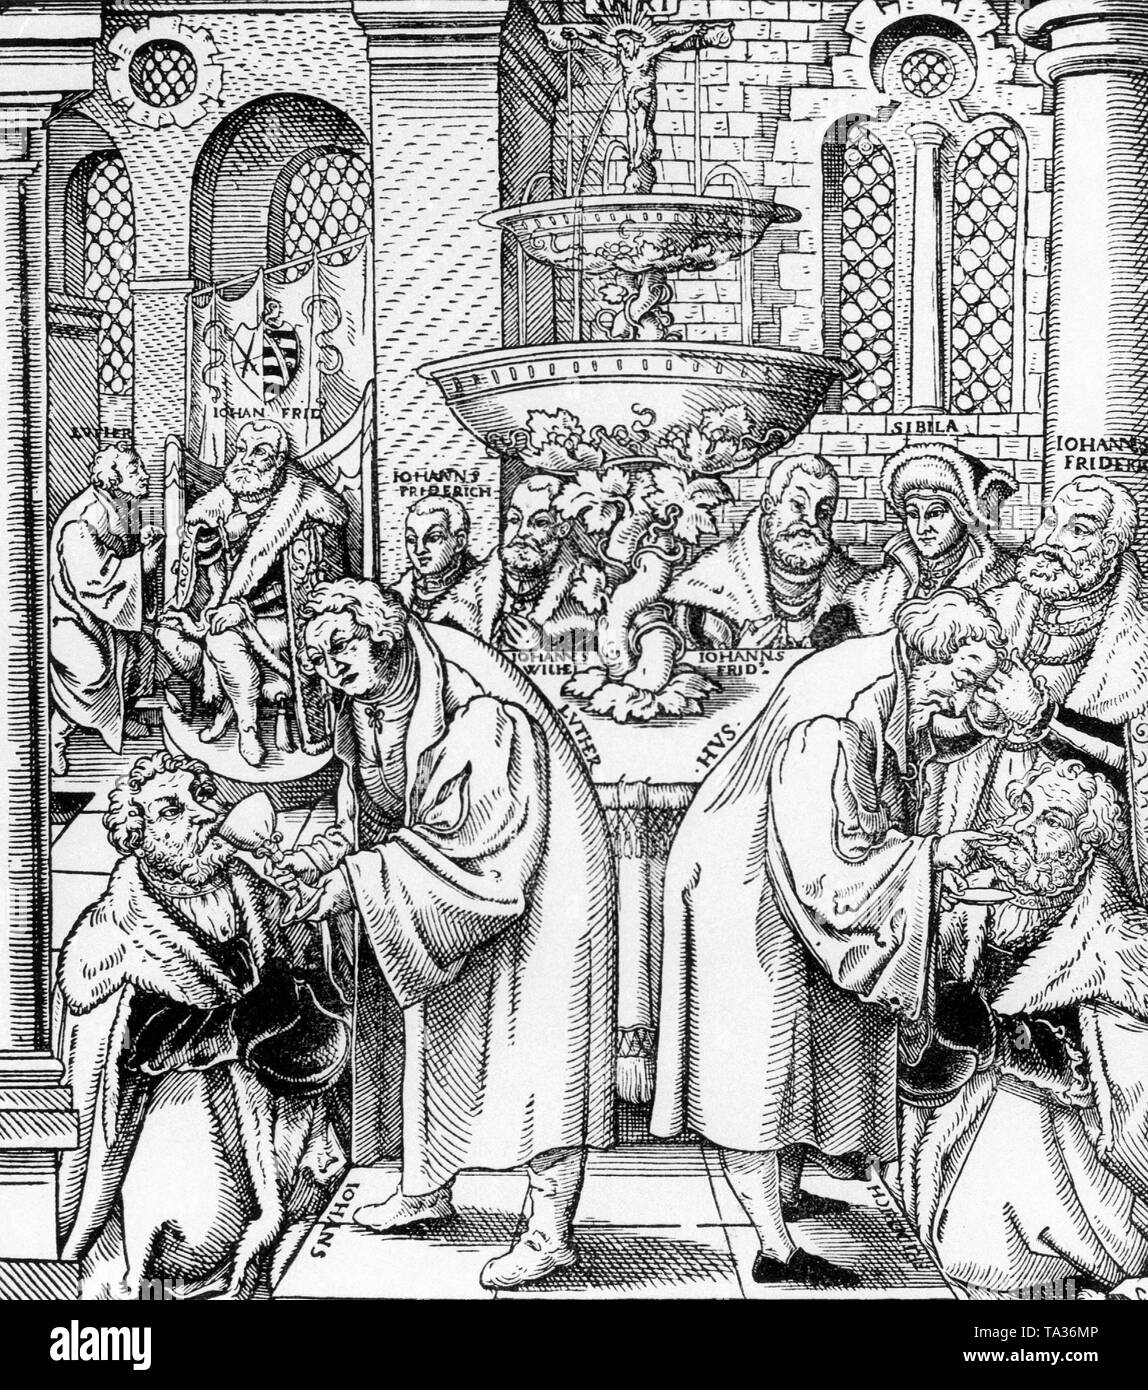 Jan Hus (1370-1415), right, along with Martin Luther distribute Holy Communion in a representation by an unknown artist from the 16th century - Stock Image